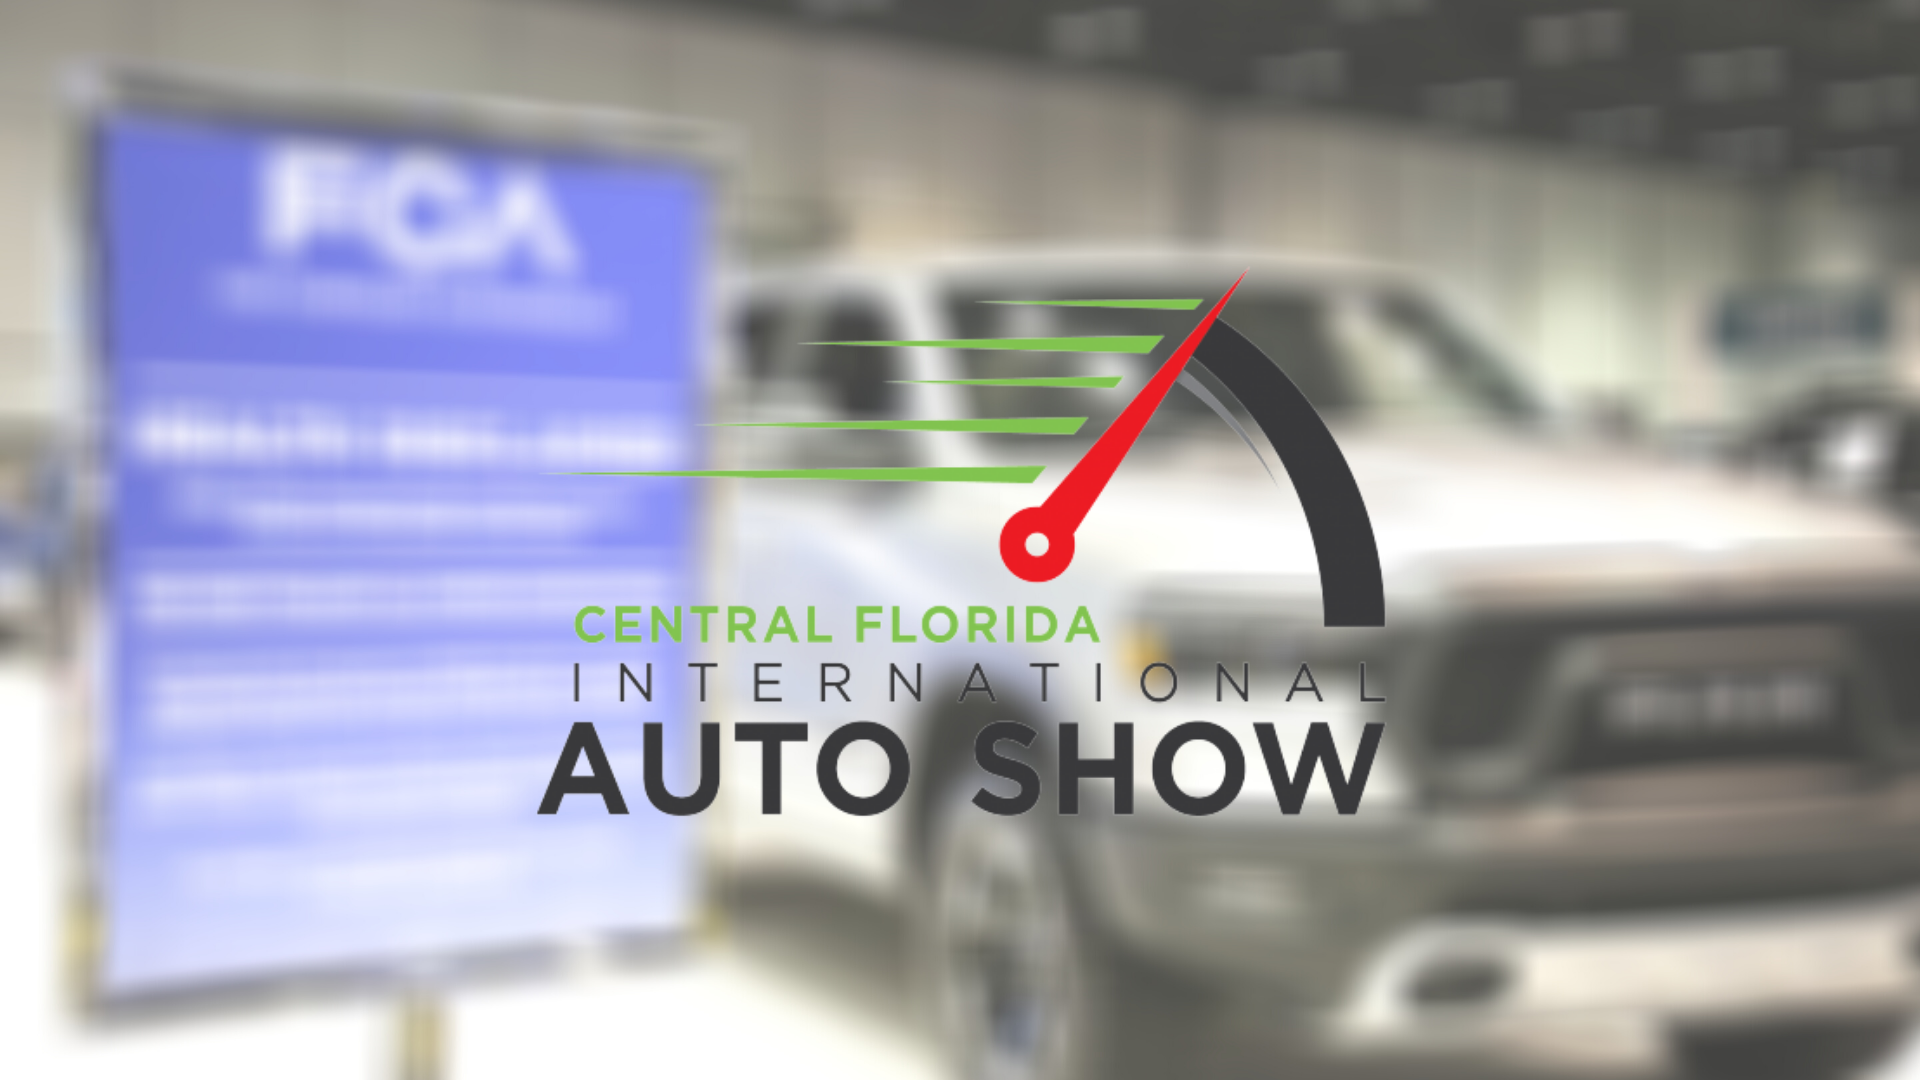 Model for Meeting Safely at the Orange County Convention Center: The Central Florida International Auto Show